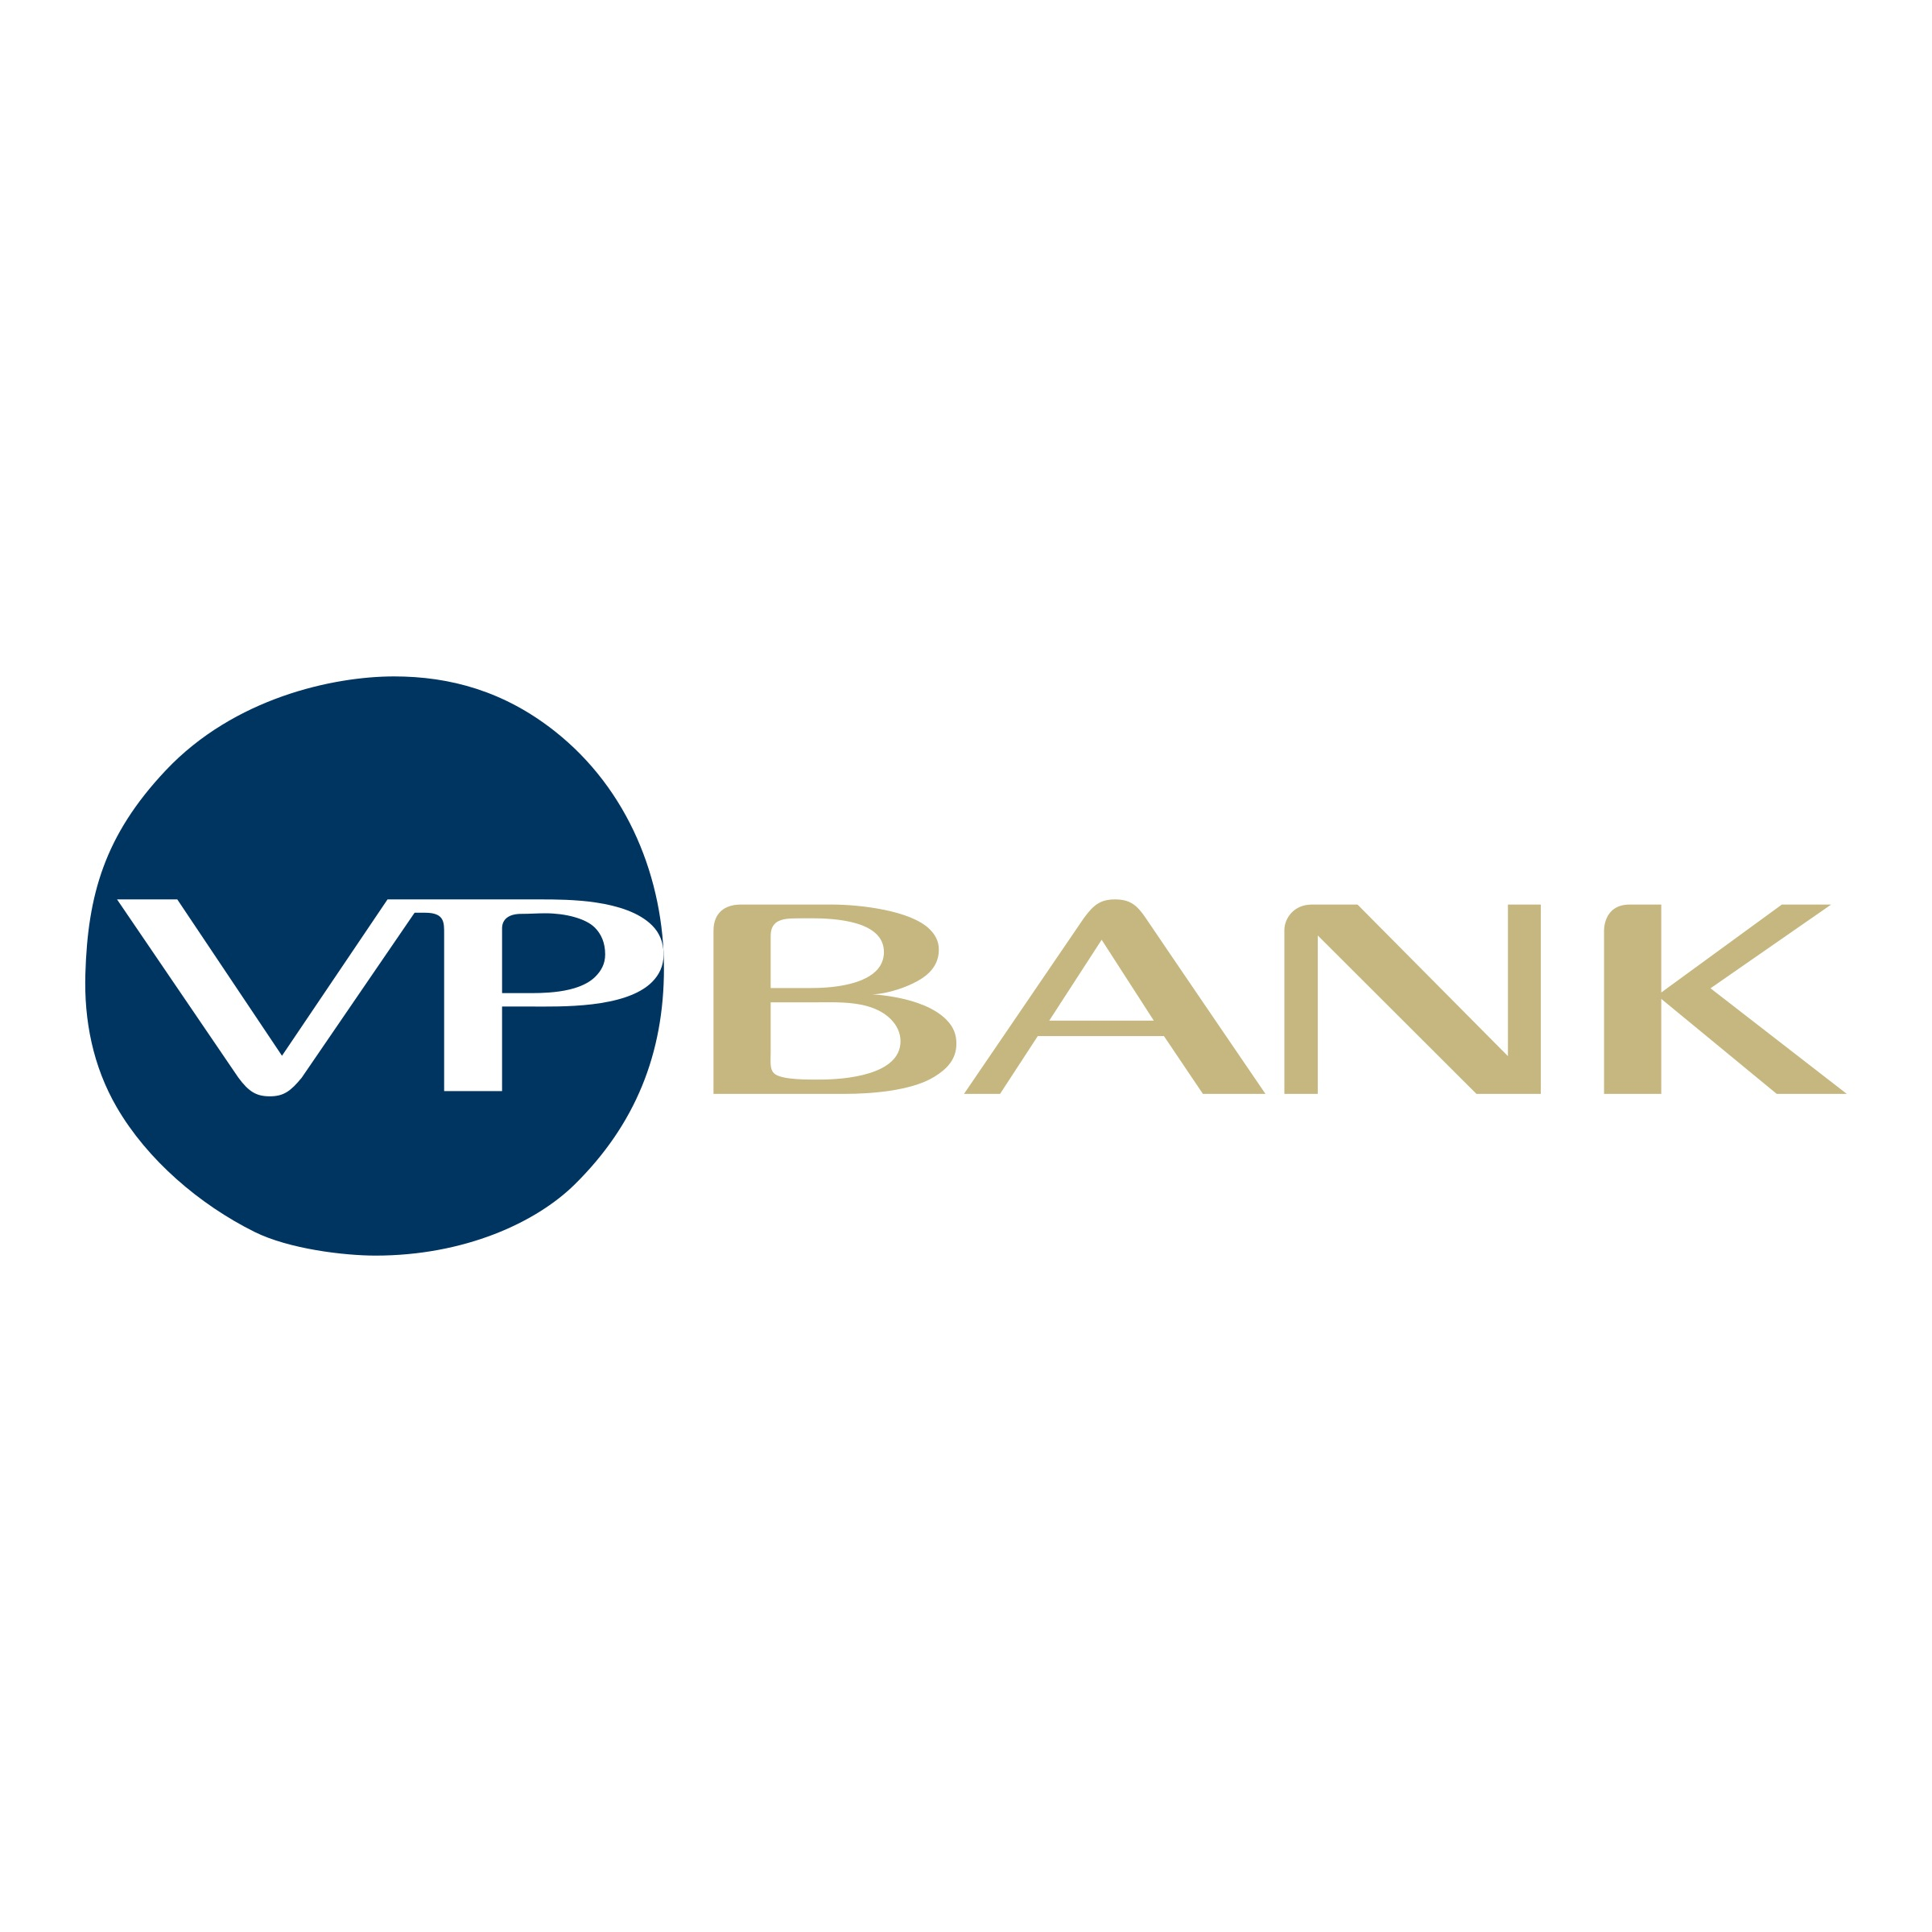 VP Bank appoints Pamela Hsu Phua as CEO of VP Bank Asia and reinforces its commitment to expanding its Asian franchise